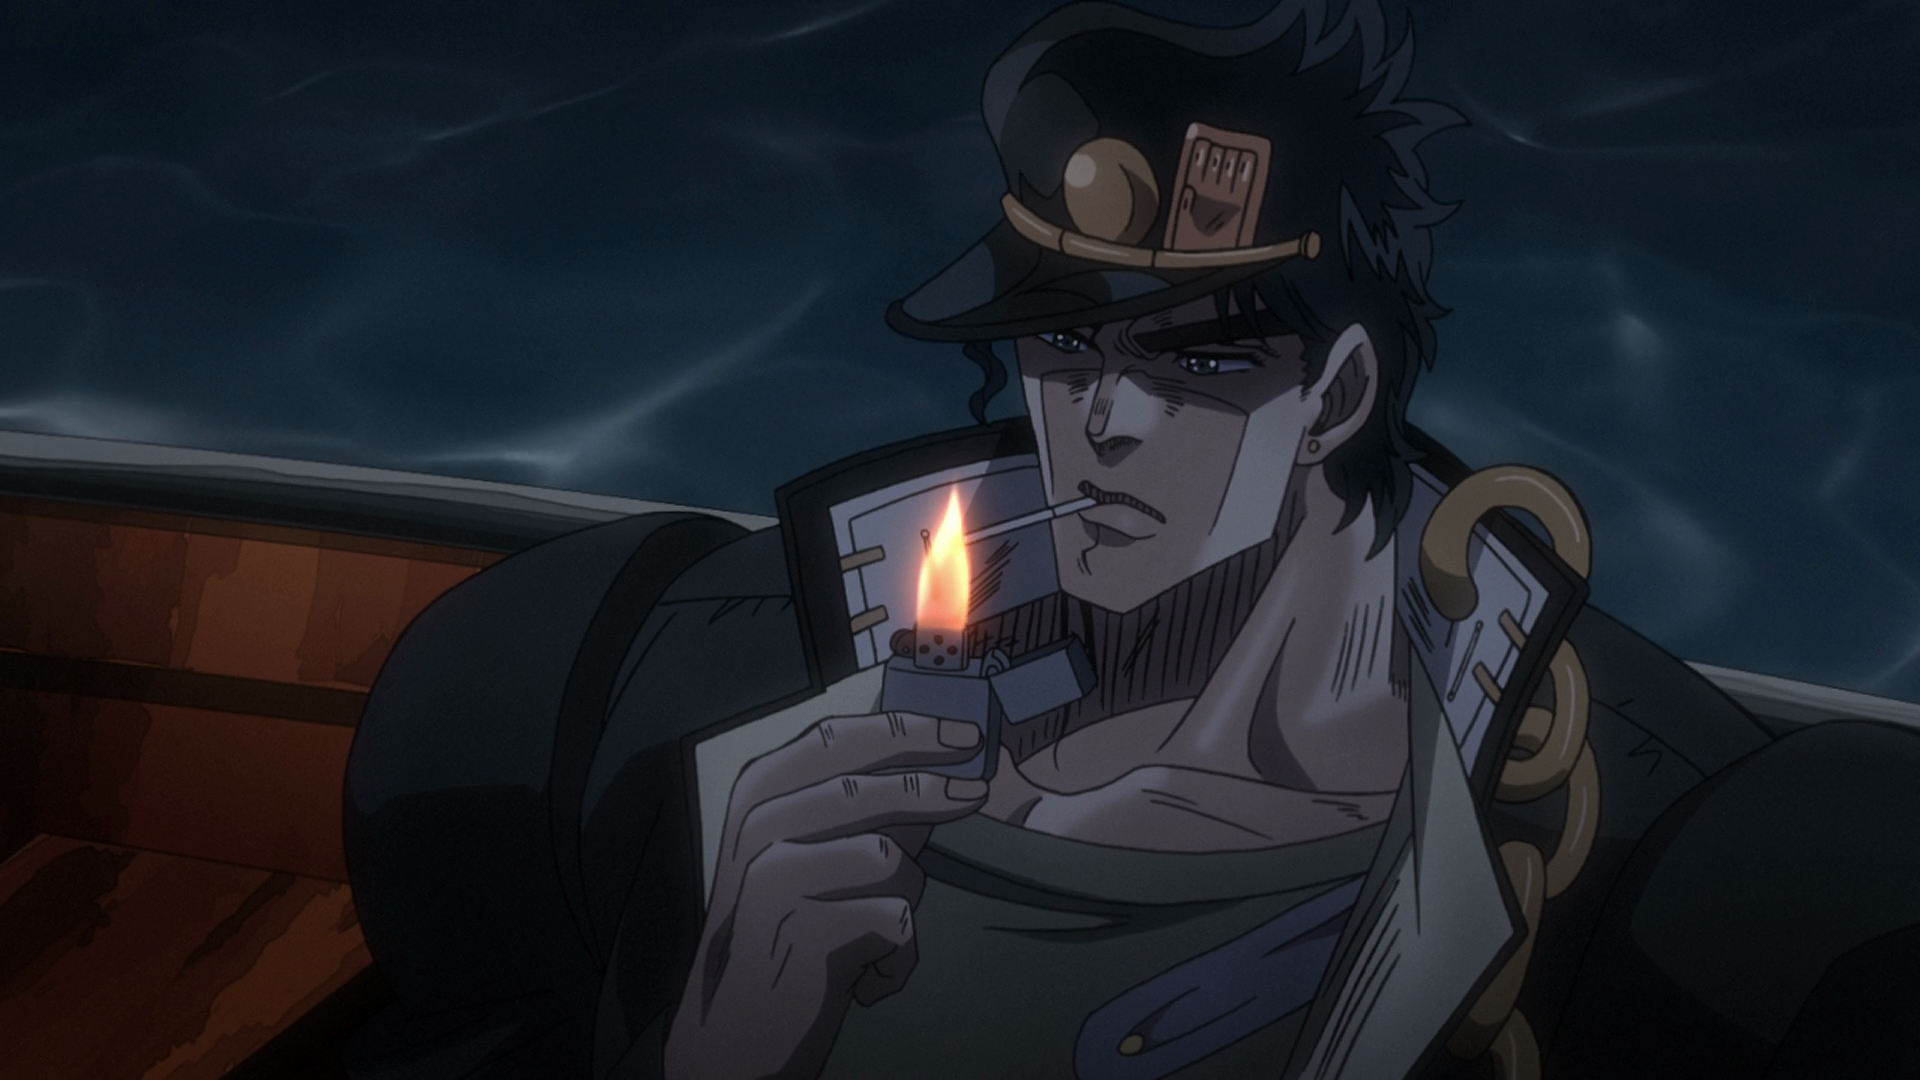 But really tokyo mx is quite cheeky with censorship on jotaro